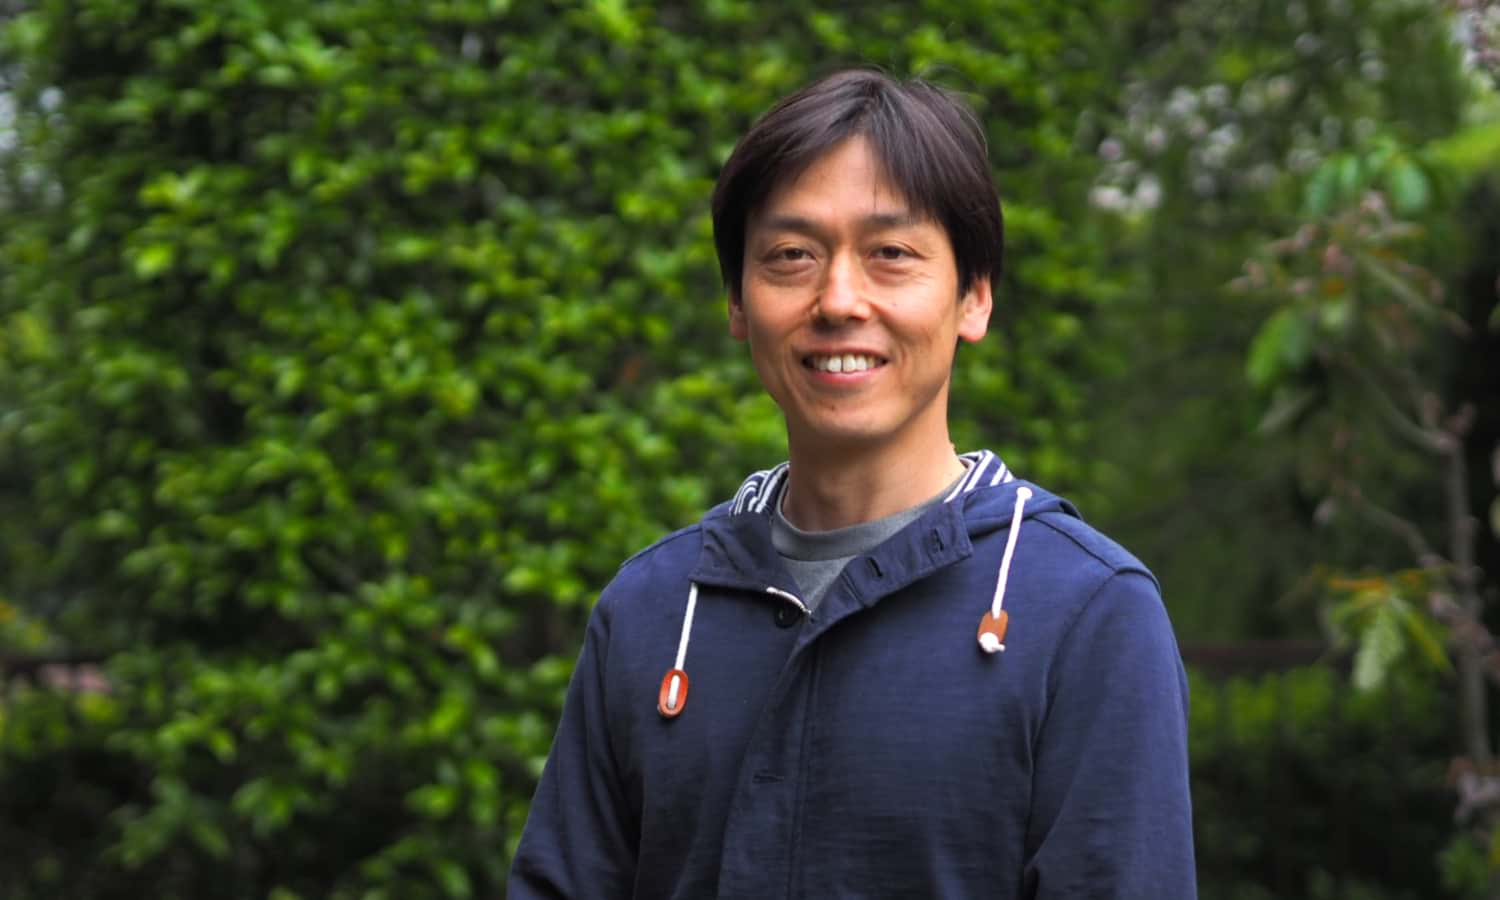 Adachi Ward of Tokyo, Japan, is trying to change the food environment to reduce diabetes risk and increase residents' vegetable consumption.